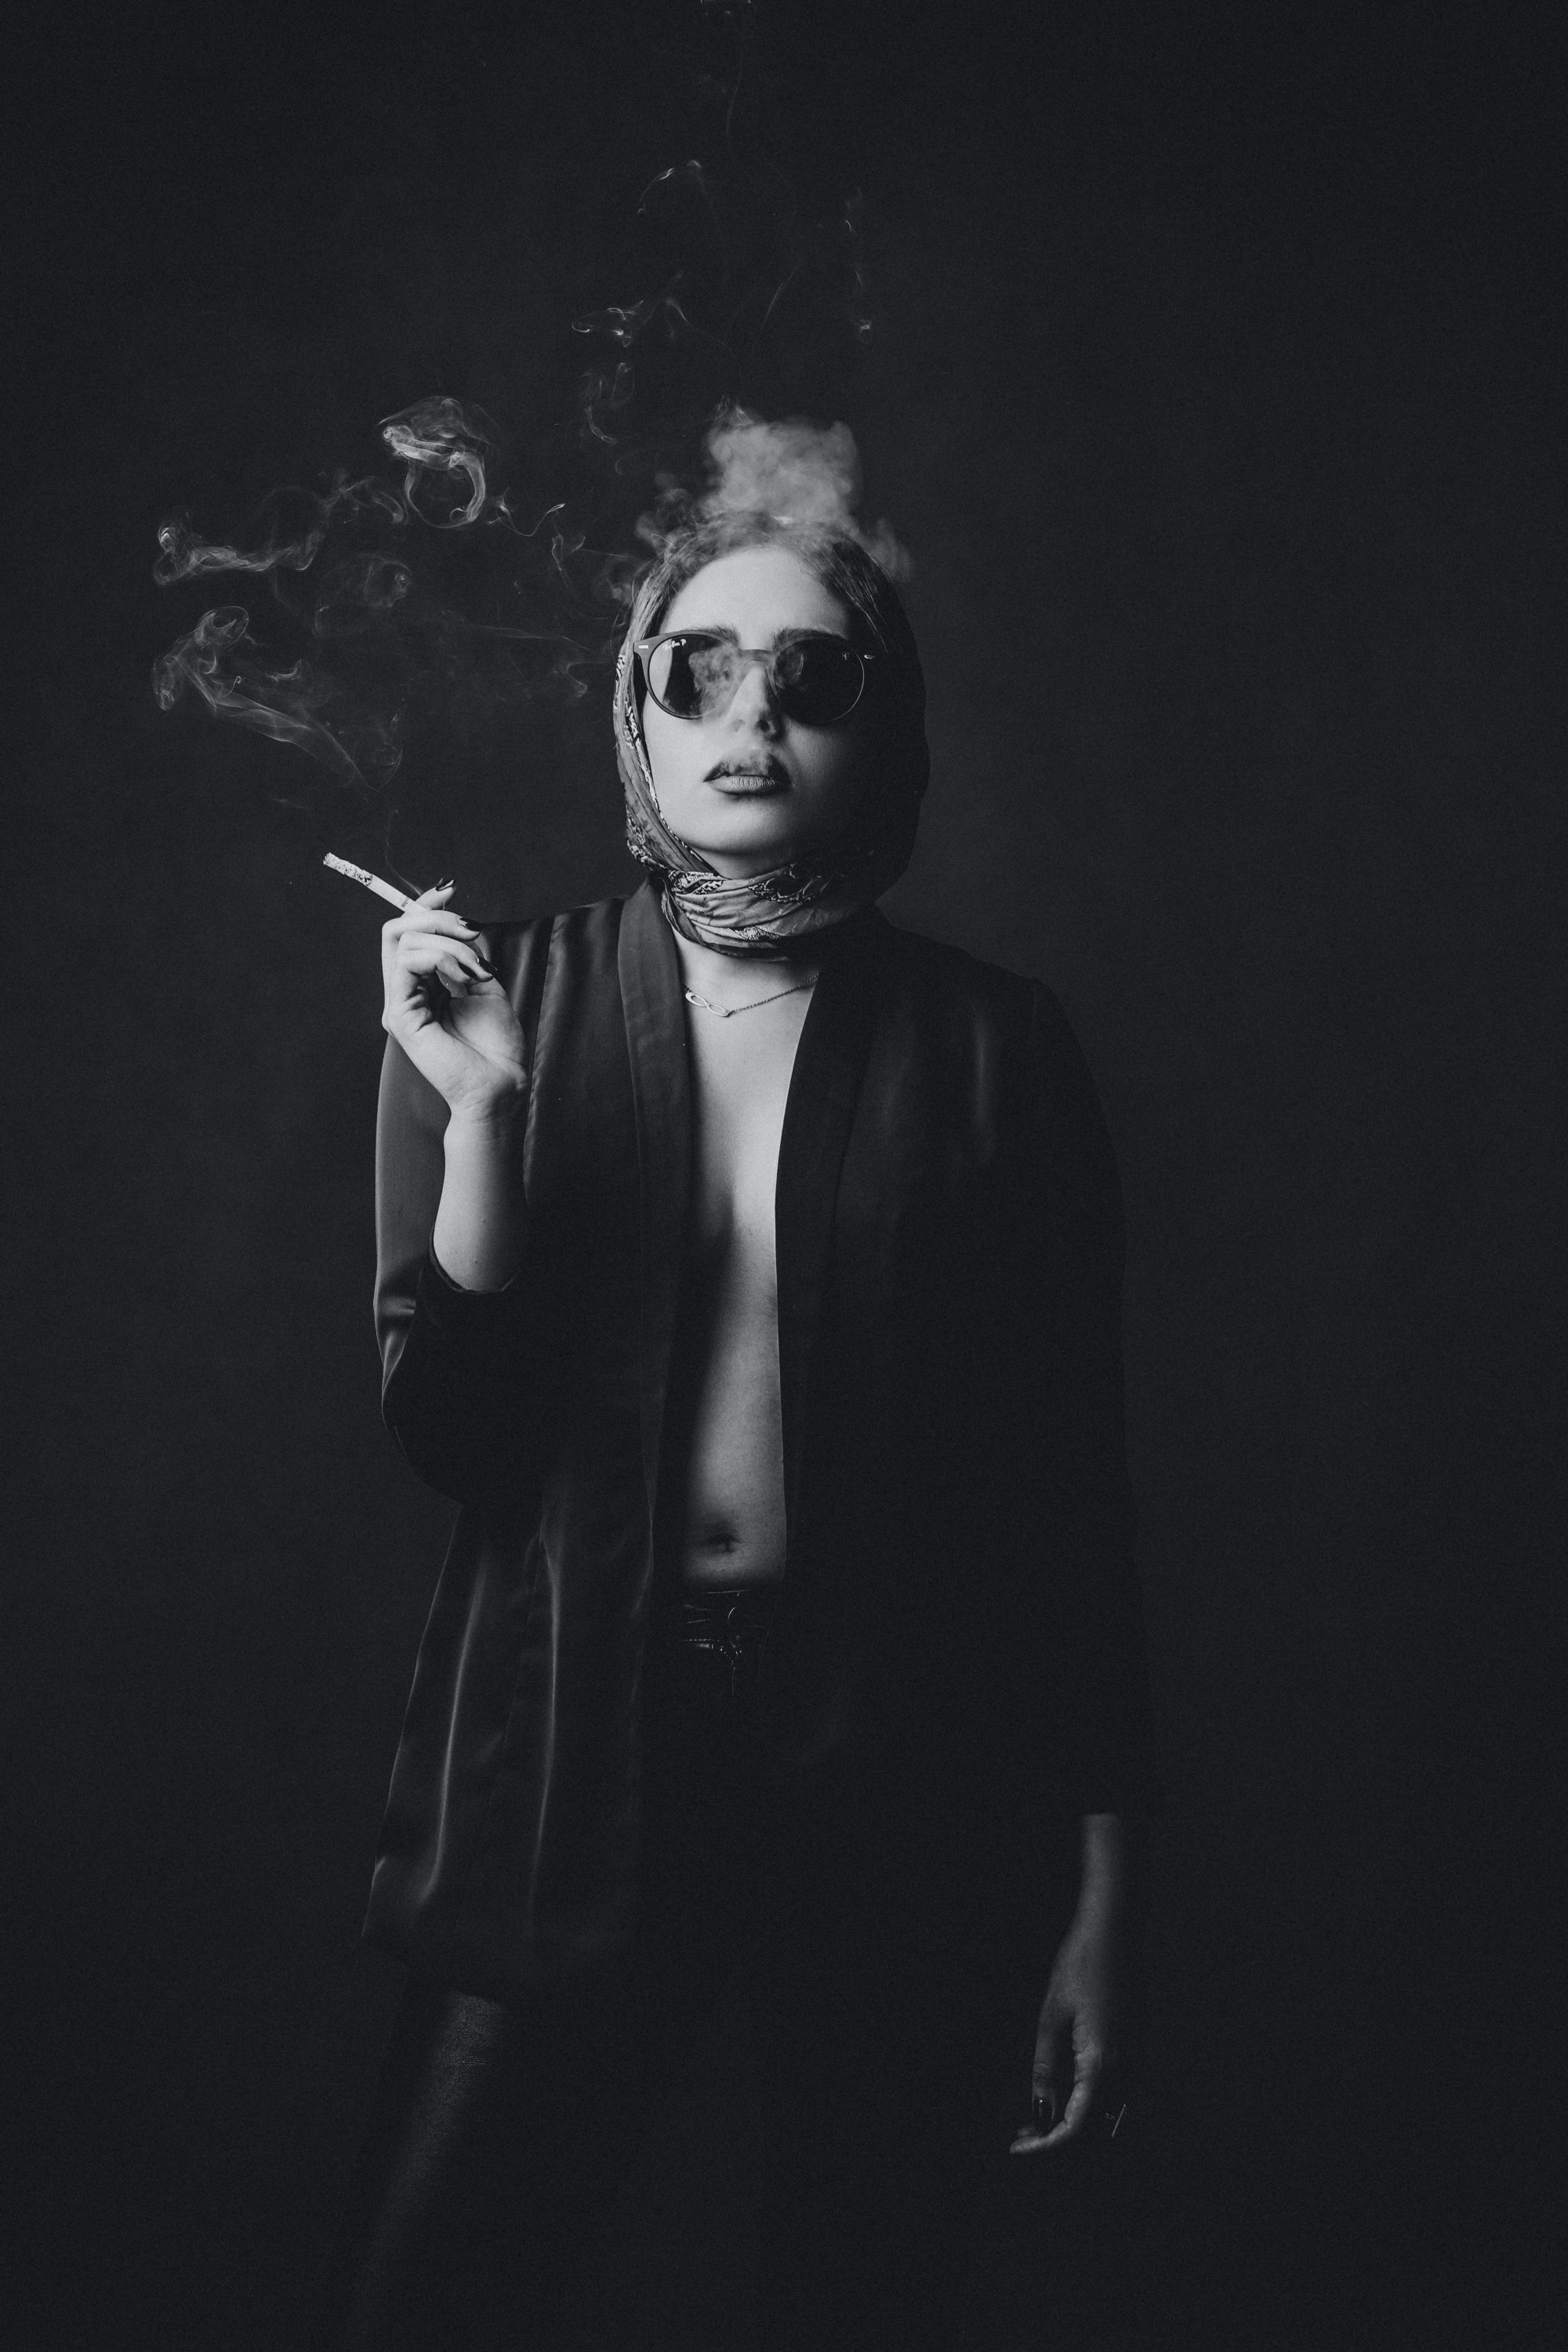 Black and white photo of stylish woman partially showing skin, smoking a cigarette